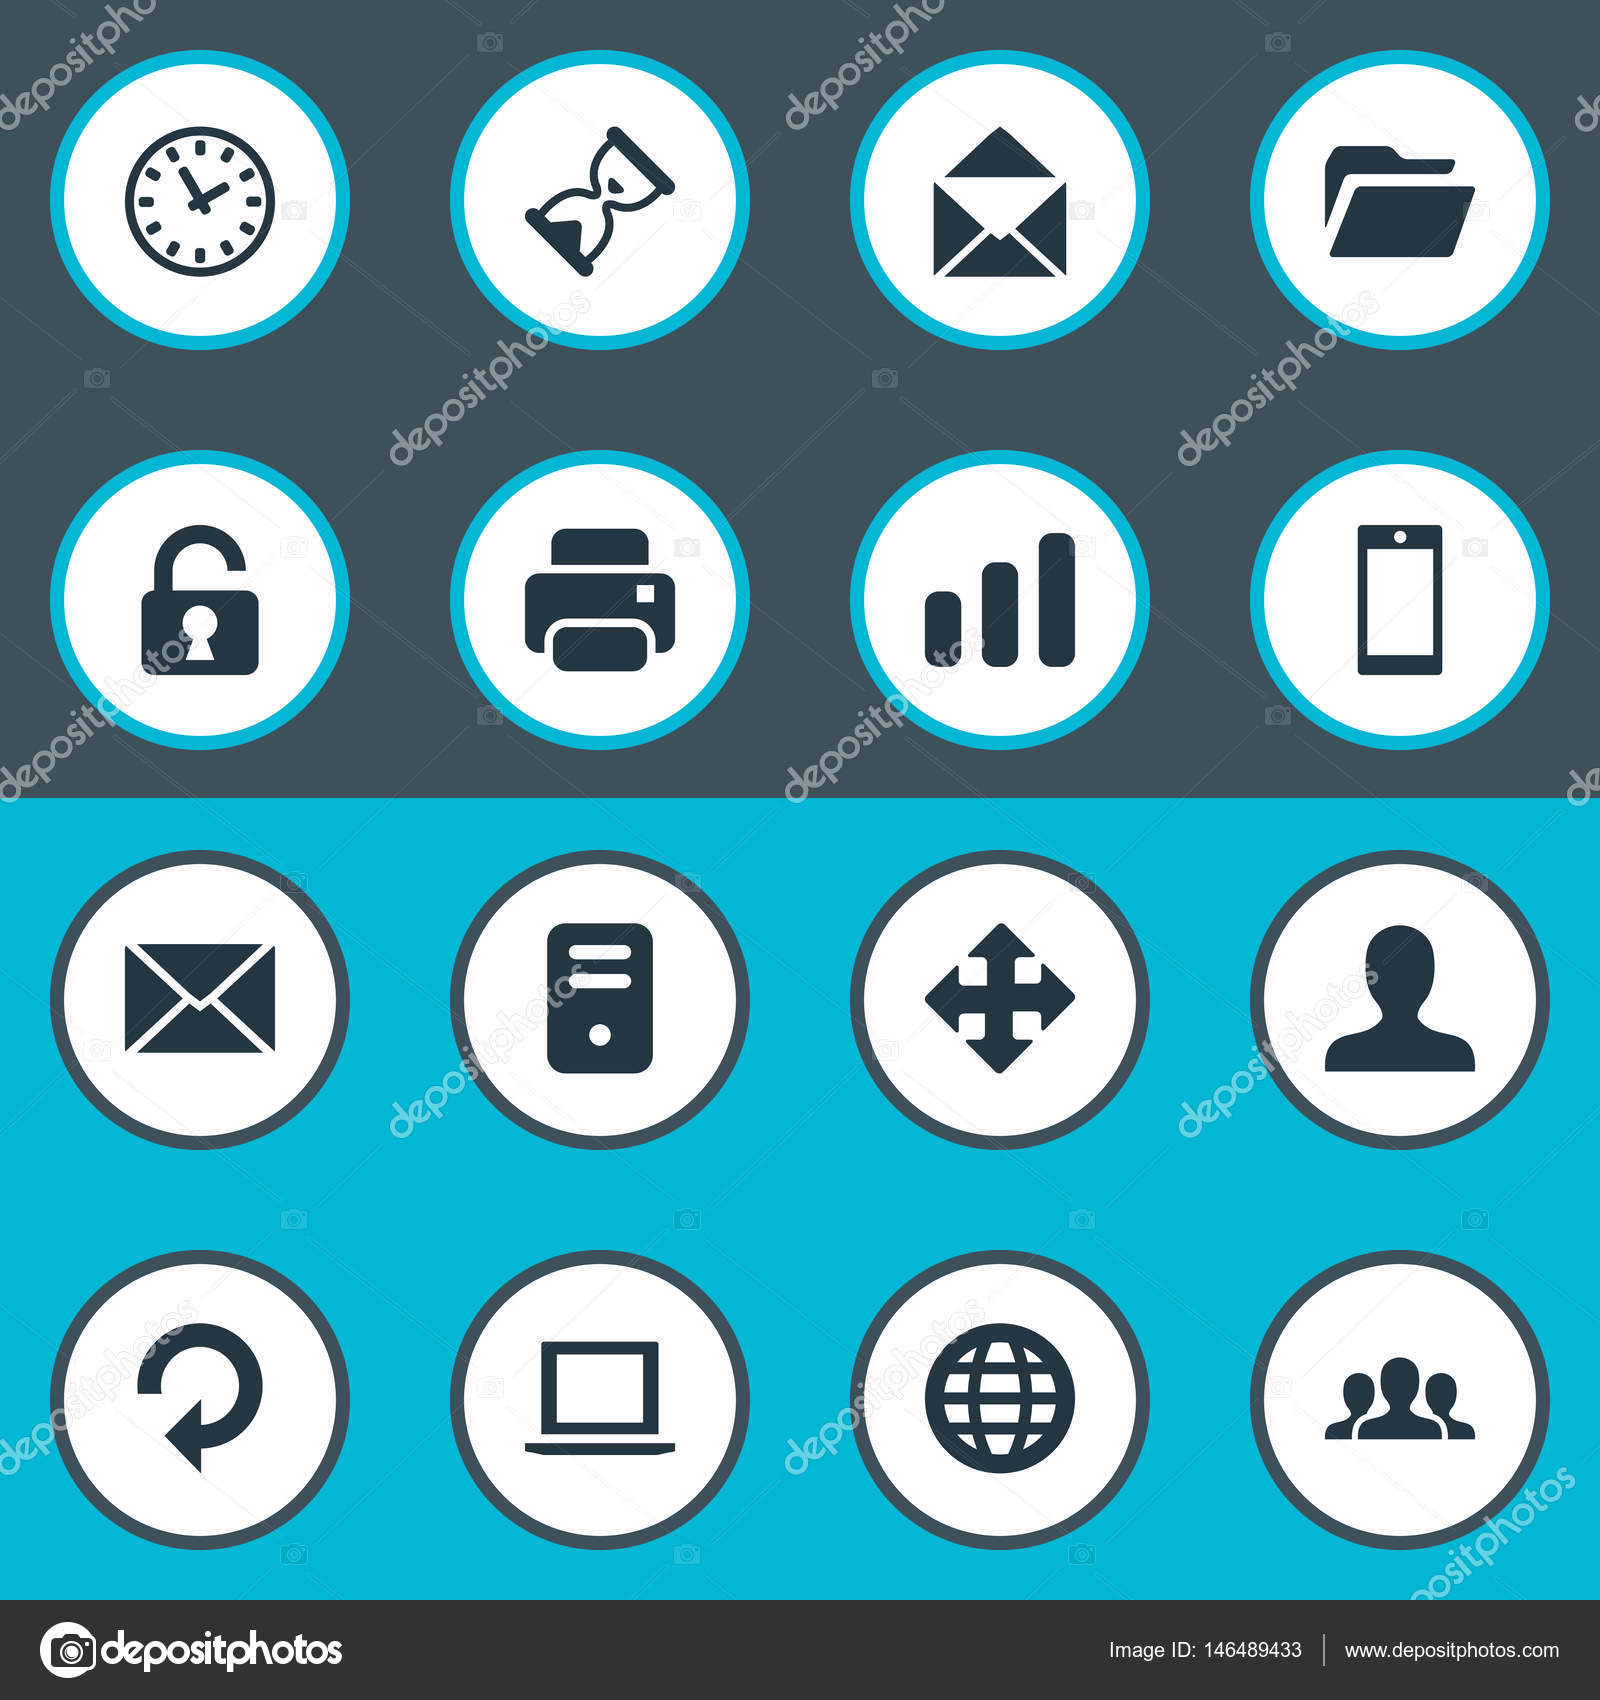 vector illustration set of simple apps icons elements sand timer